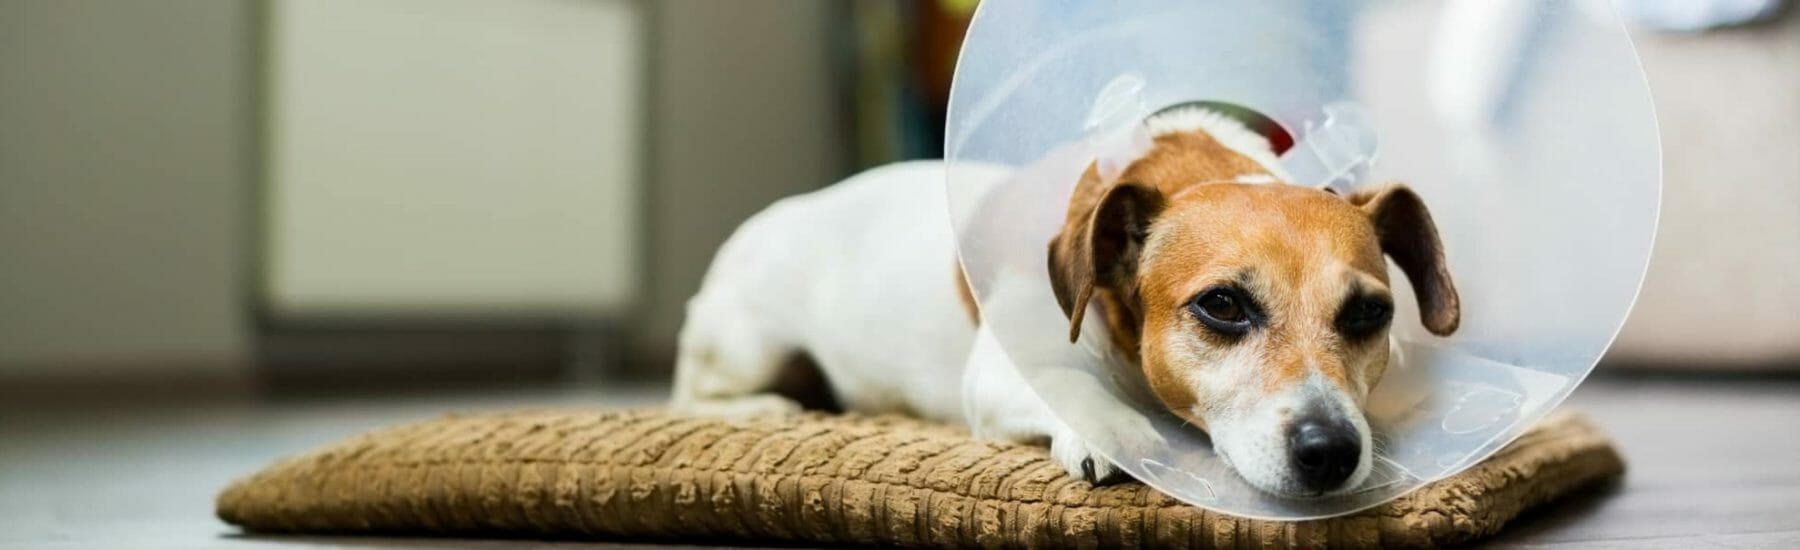 Endoscopy Services for Pets